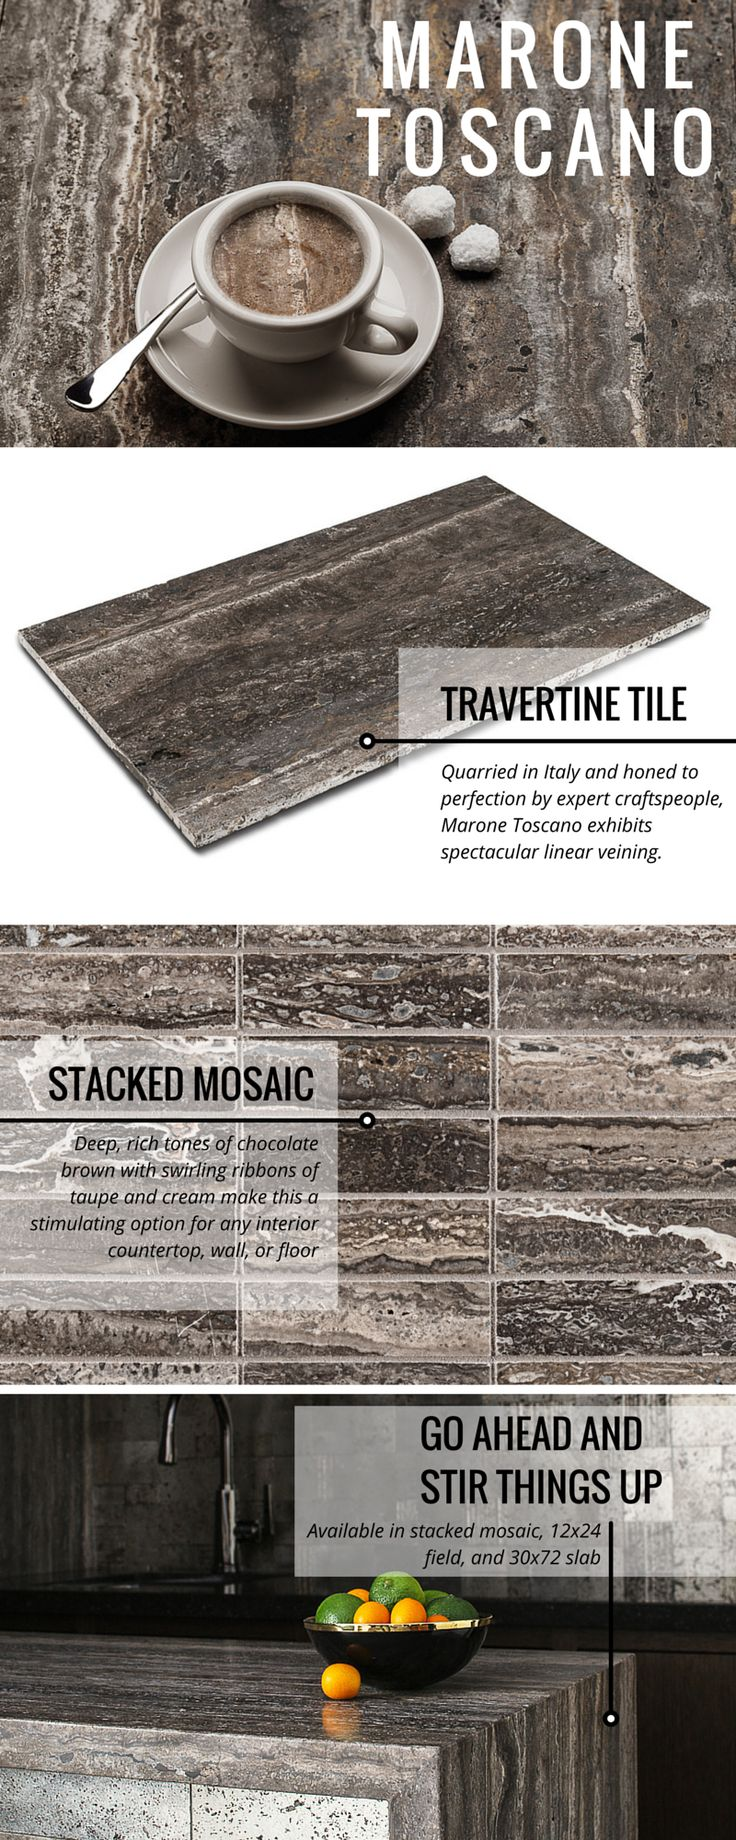 Marone Toscano travertine tile in stacked mosaic and rectangle field options.